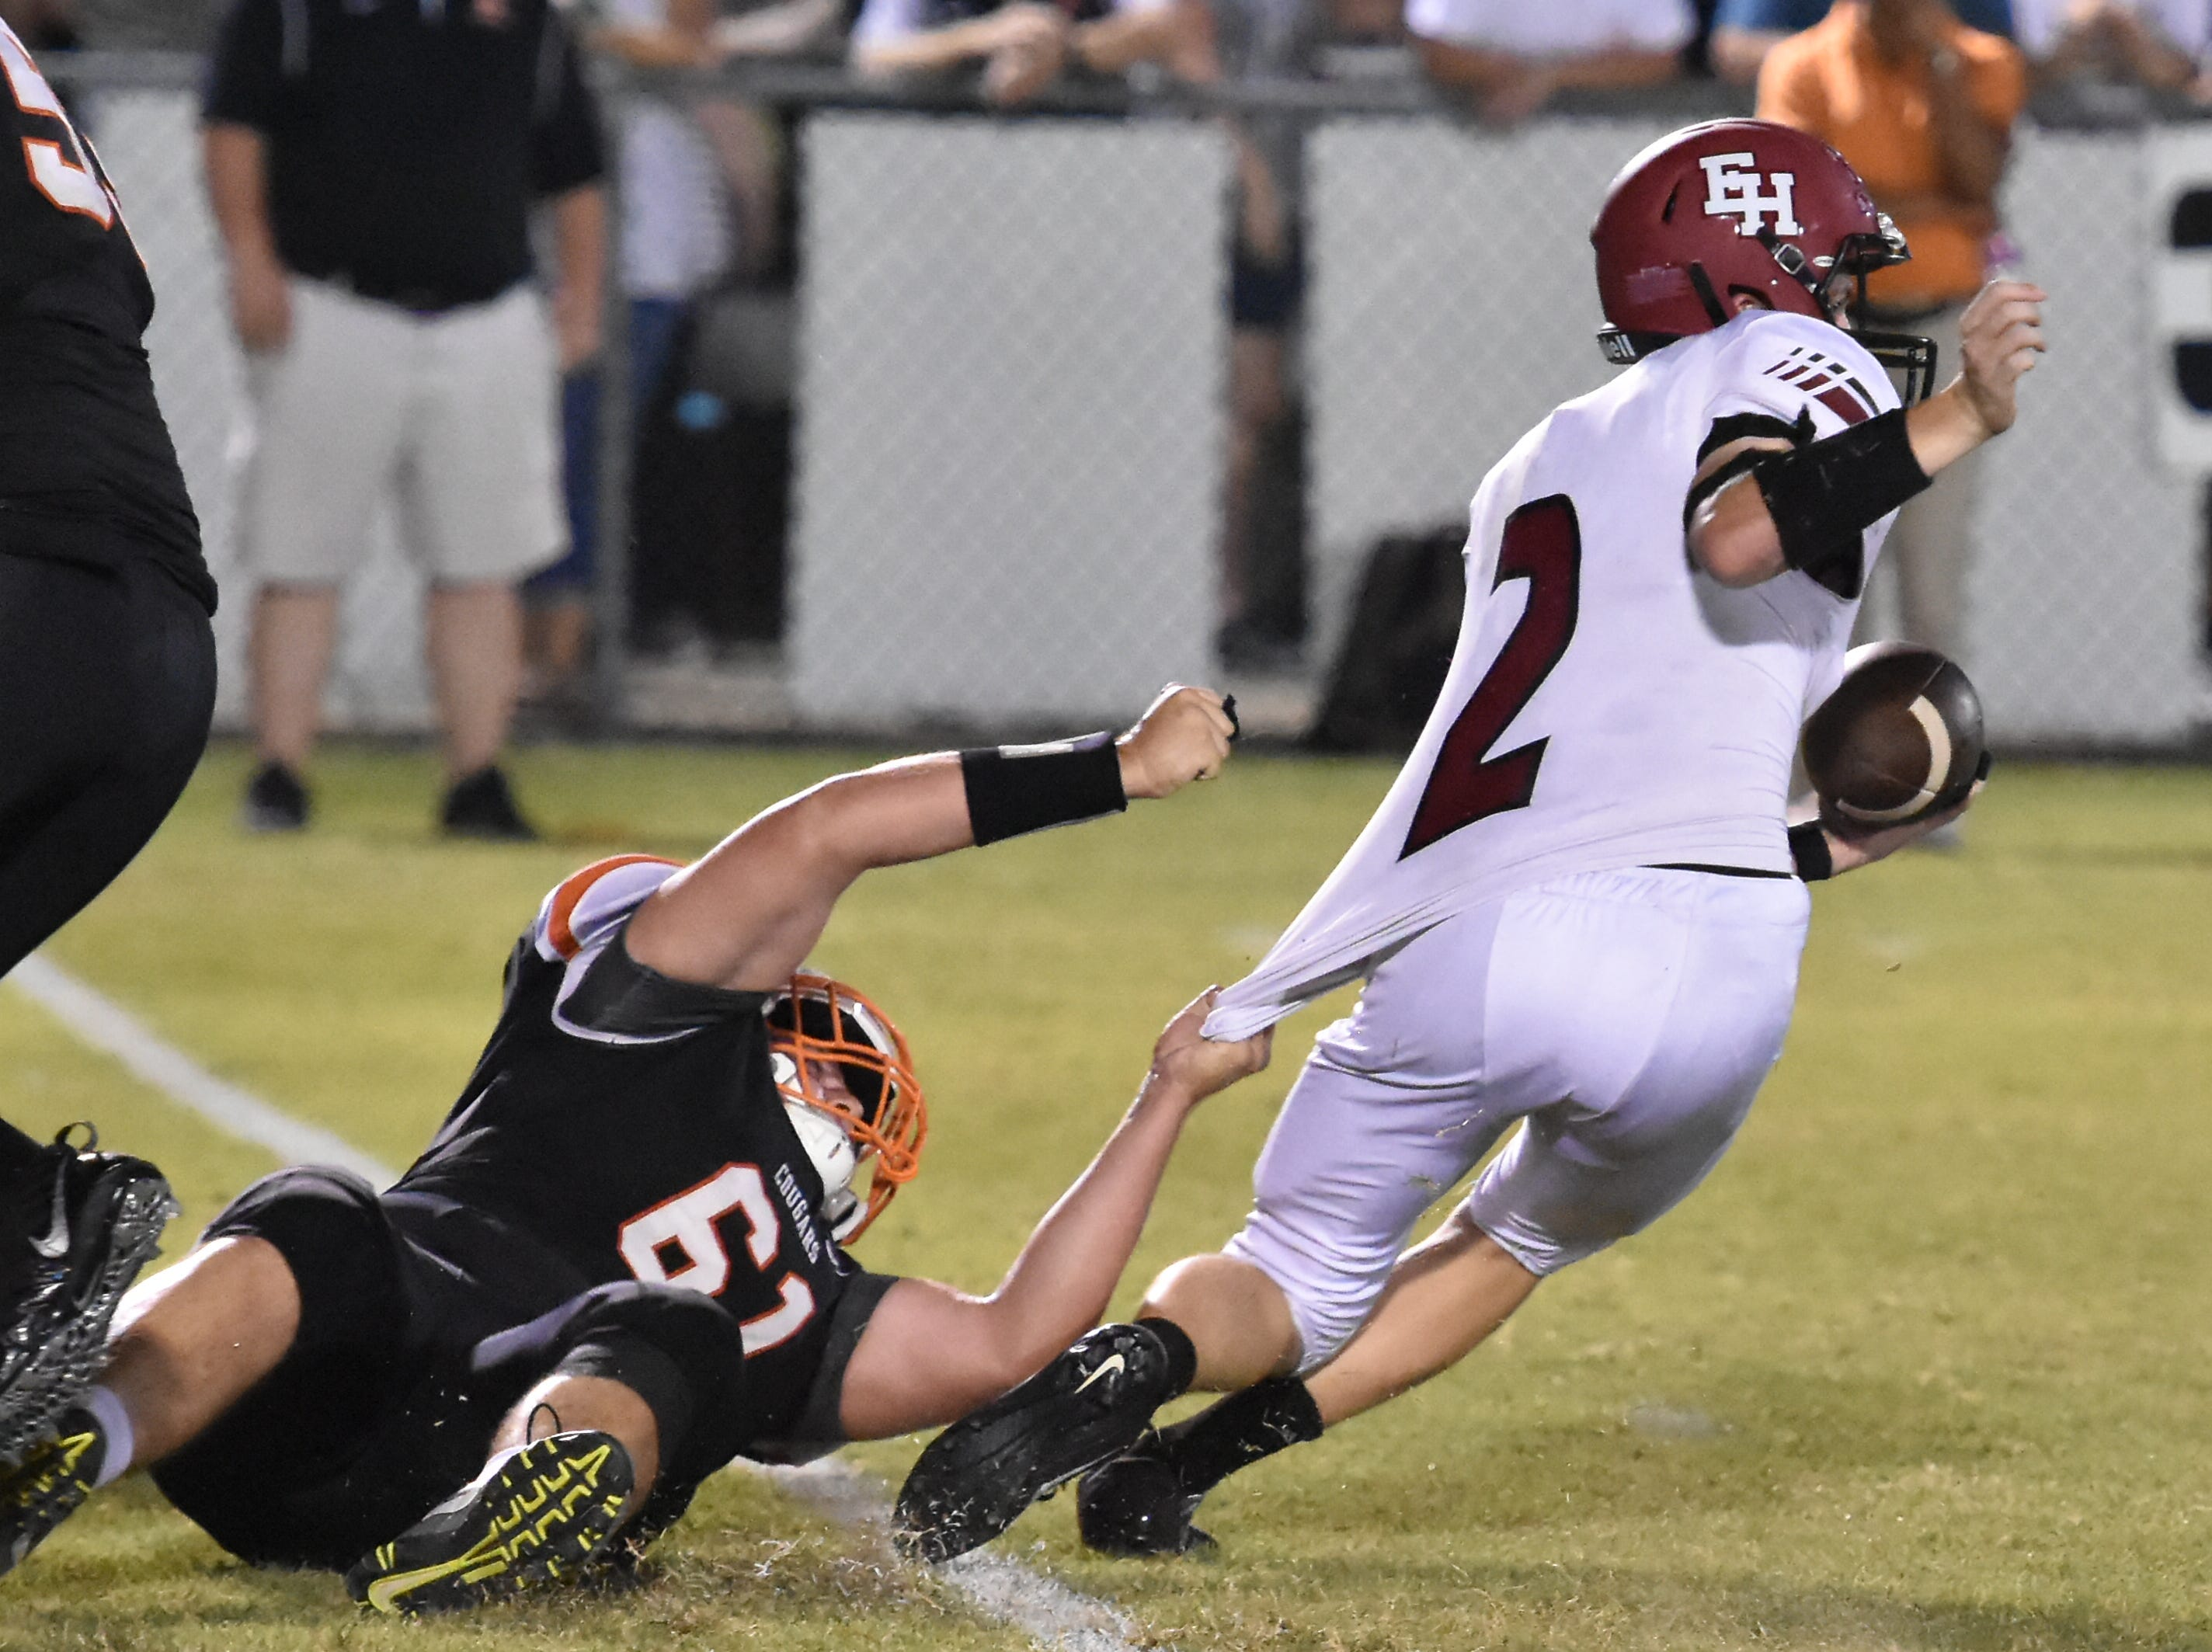 Daniel Templeton of MTCS holds on to the jersey of Ezell- Harding QB Derik Griffin Friday night.